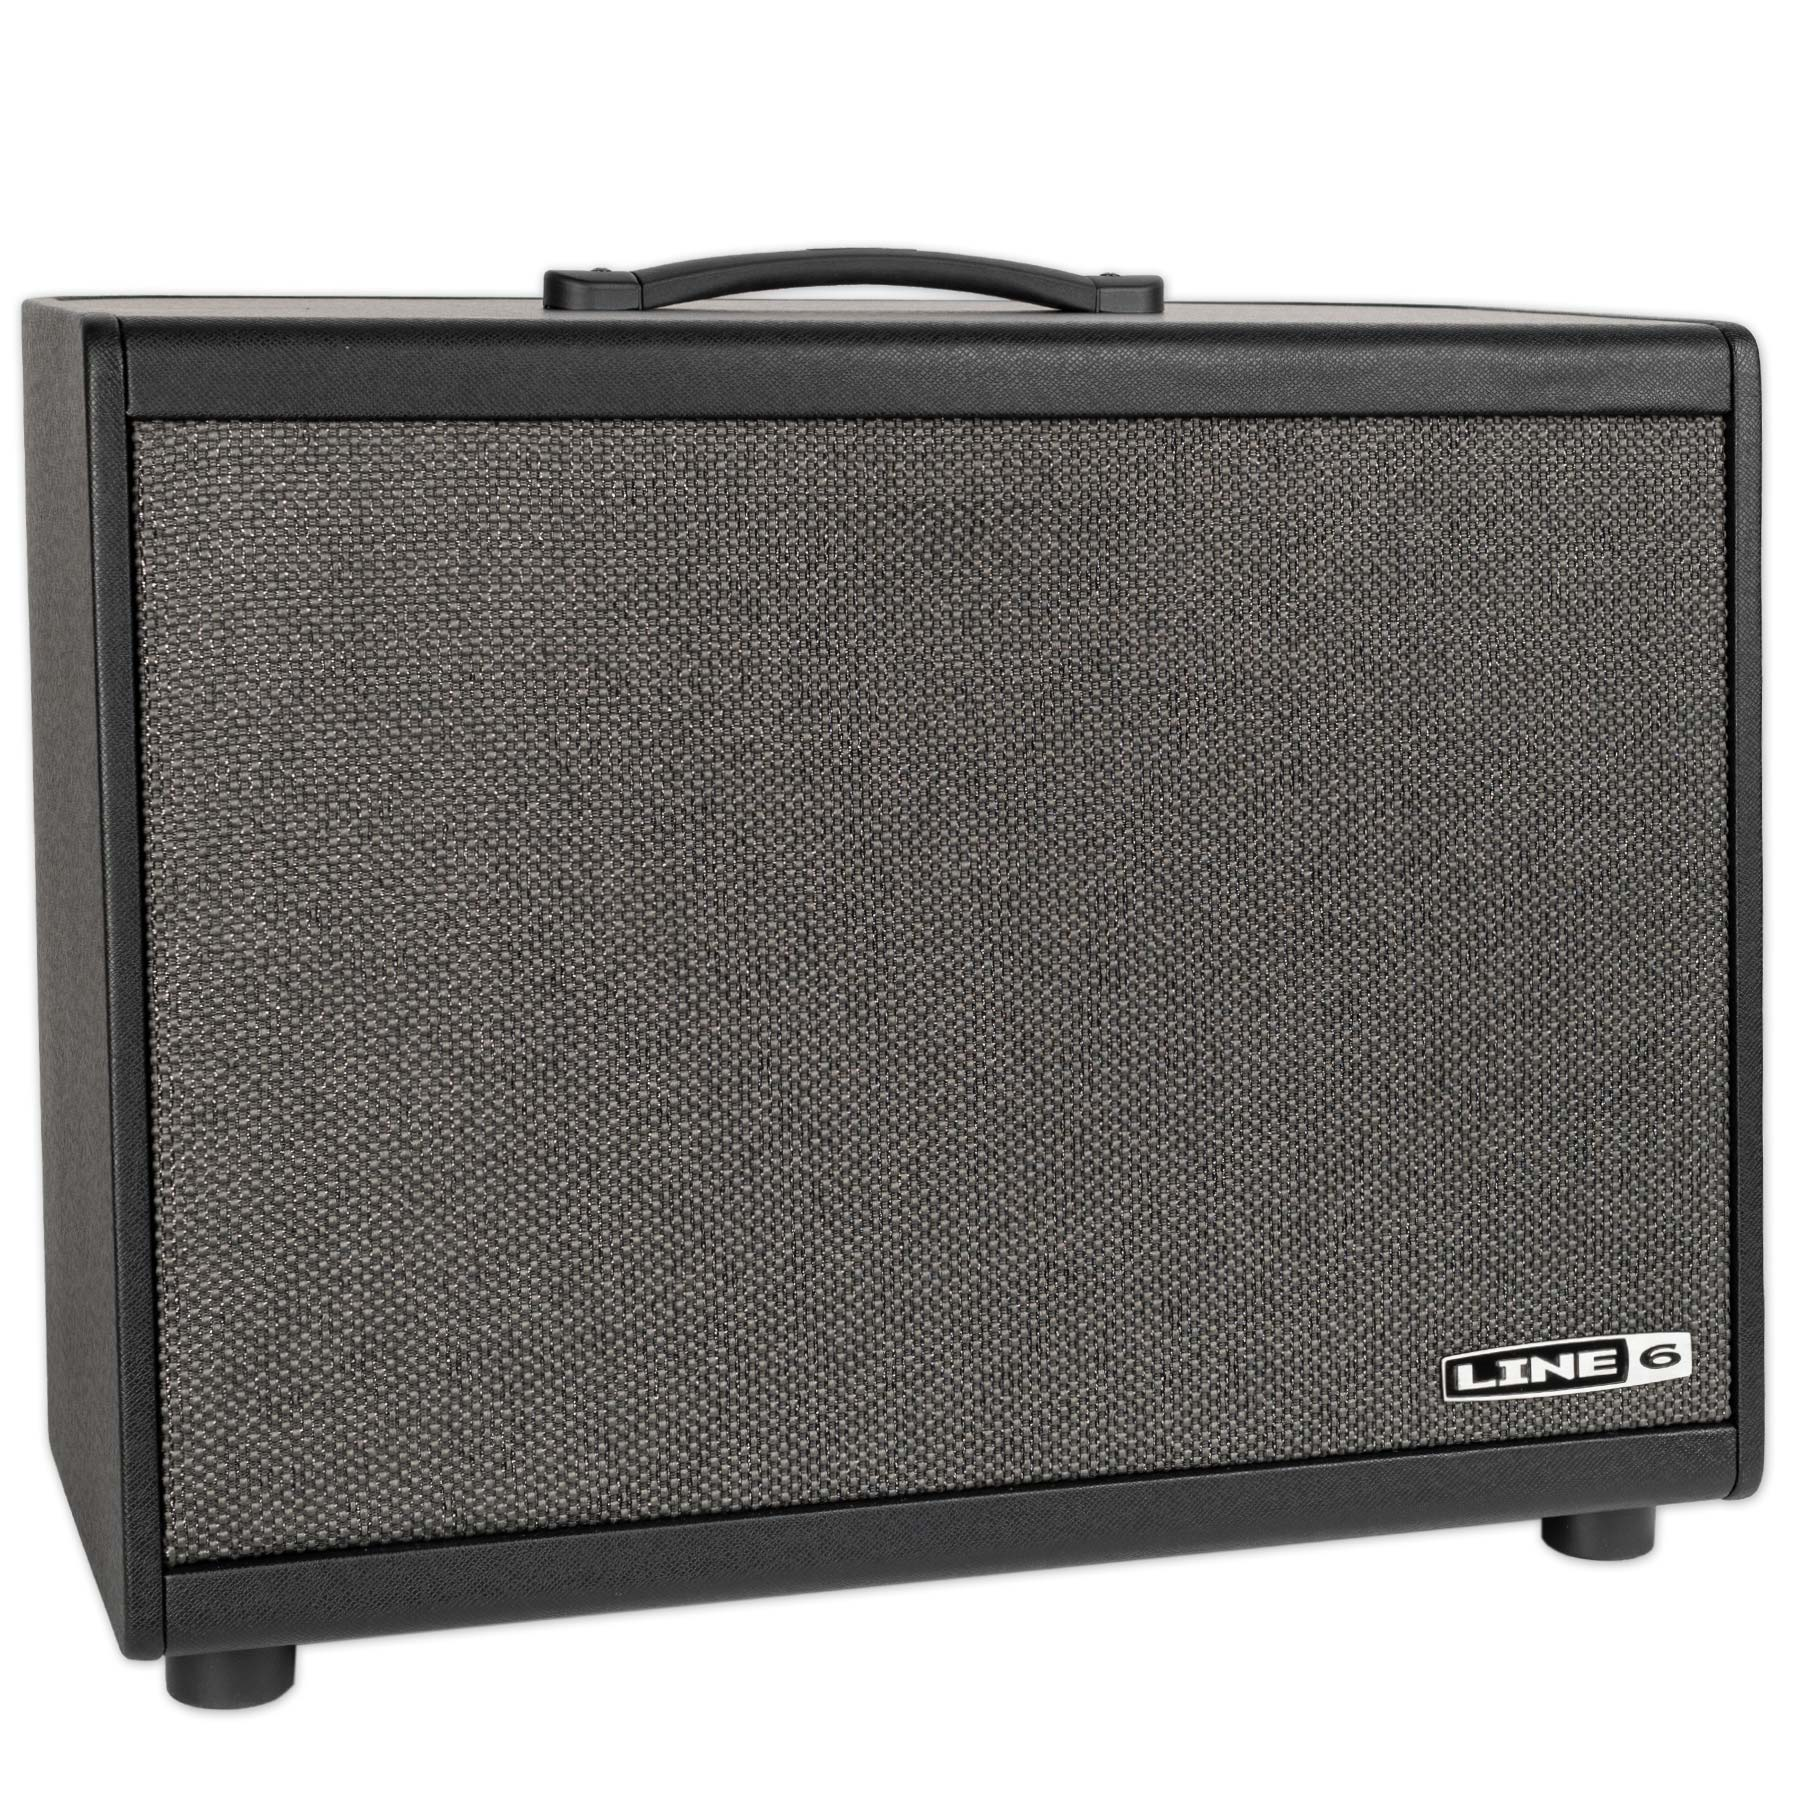 LINE 6 POWER CAB 112 GUITAR MODELLER SPEAKER SYSTEM